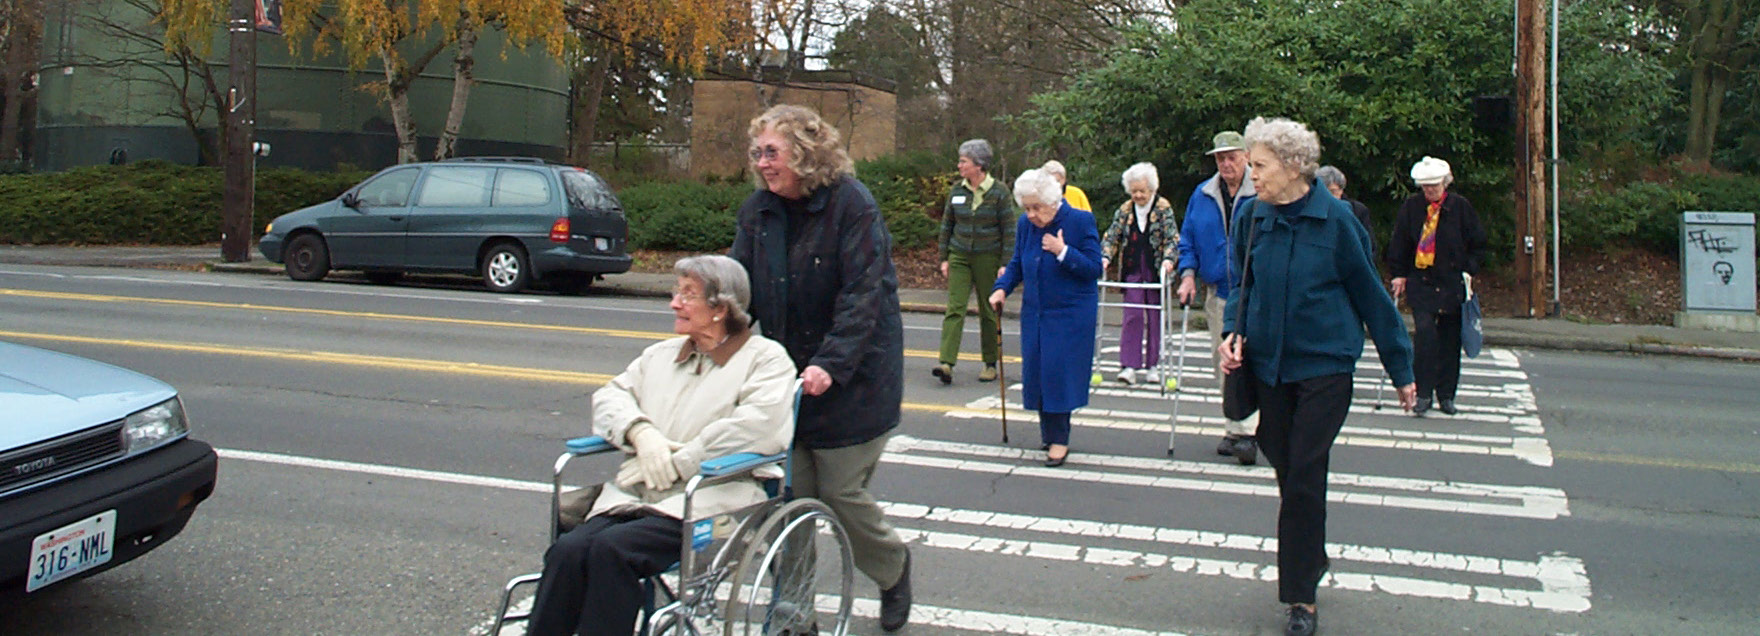 group of seniors crossing the street